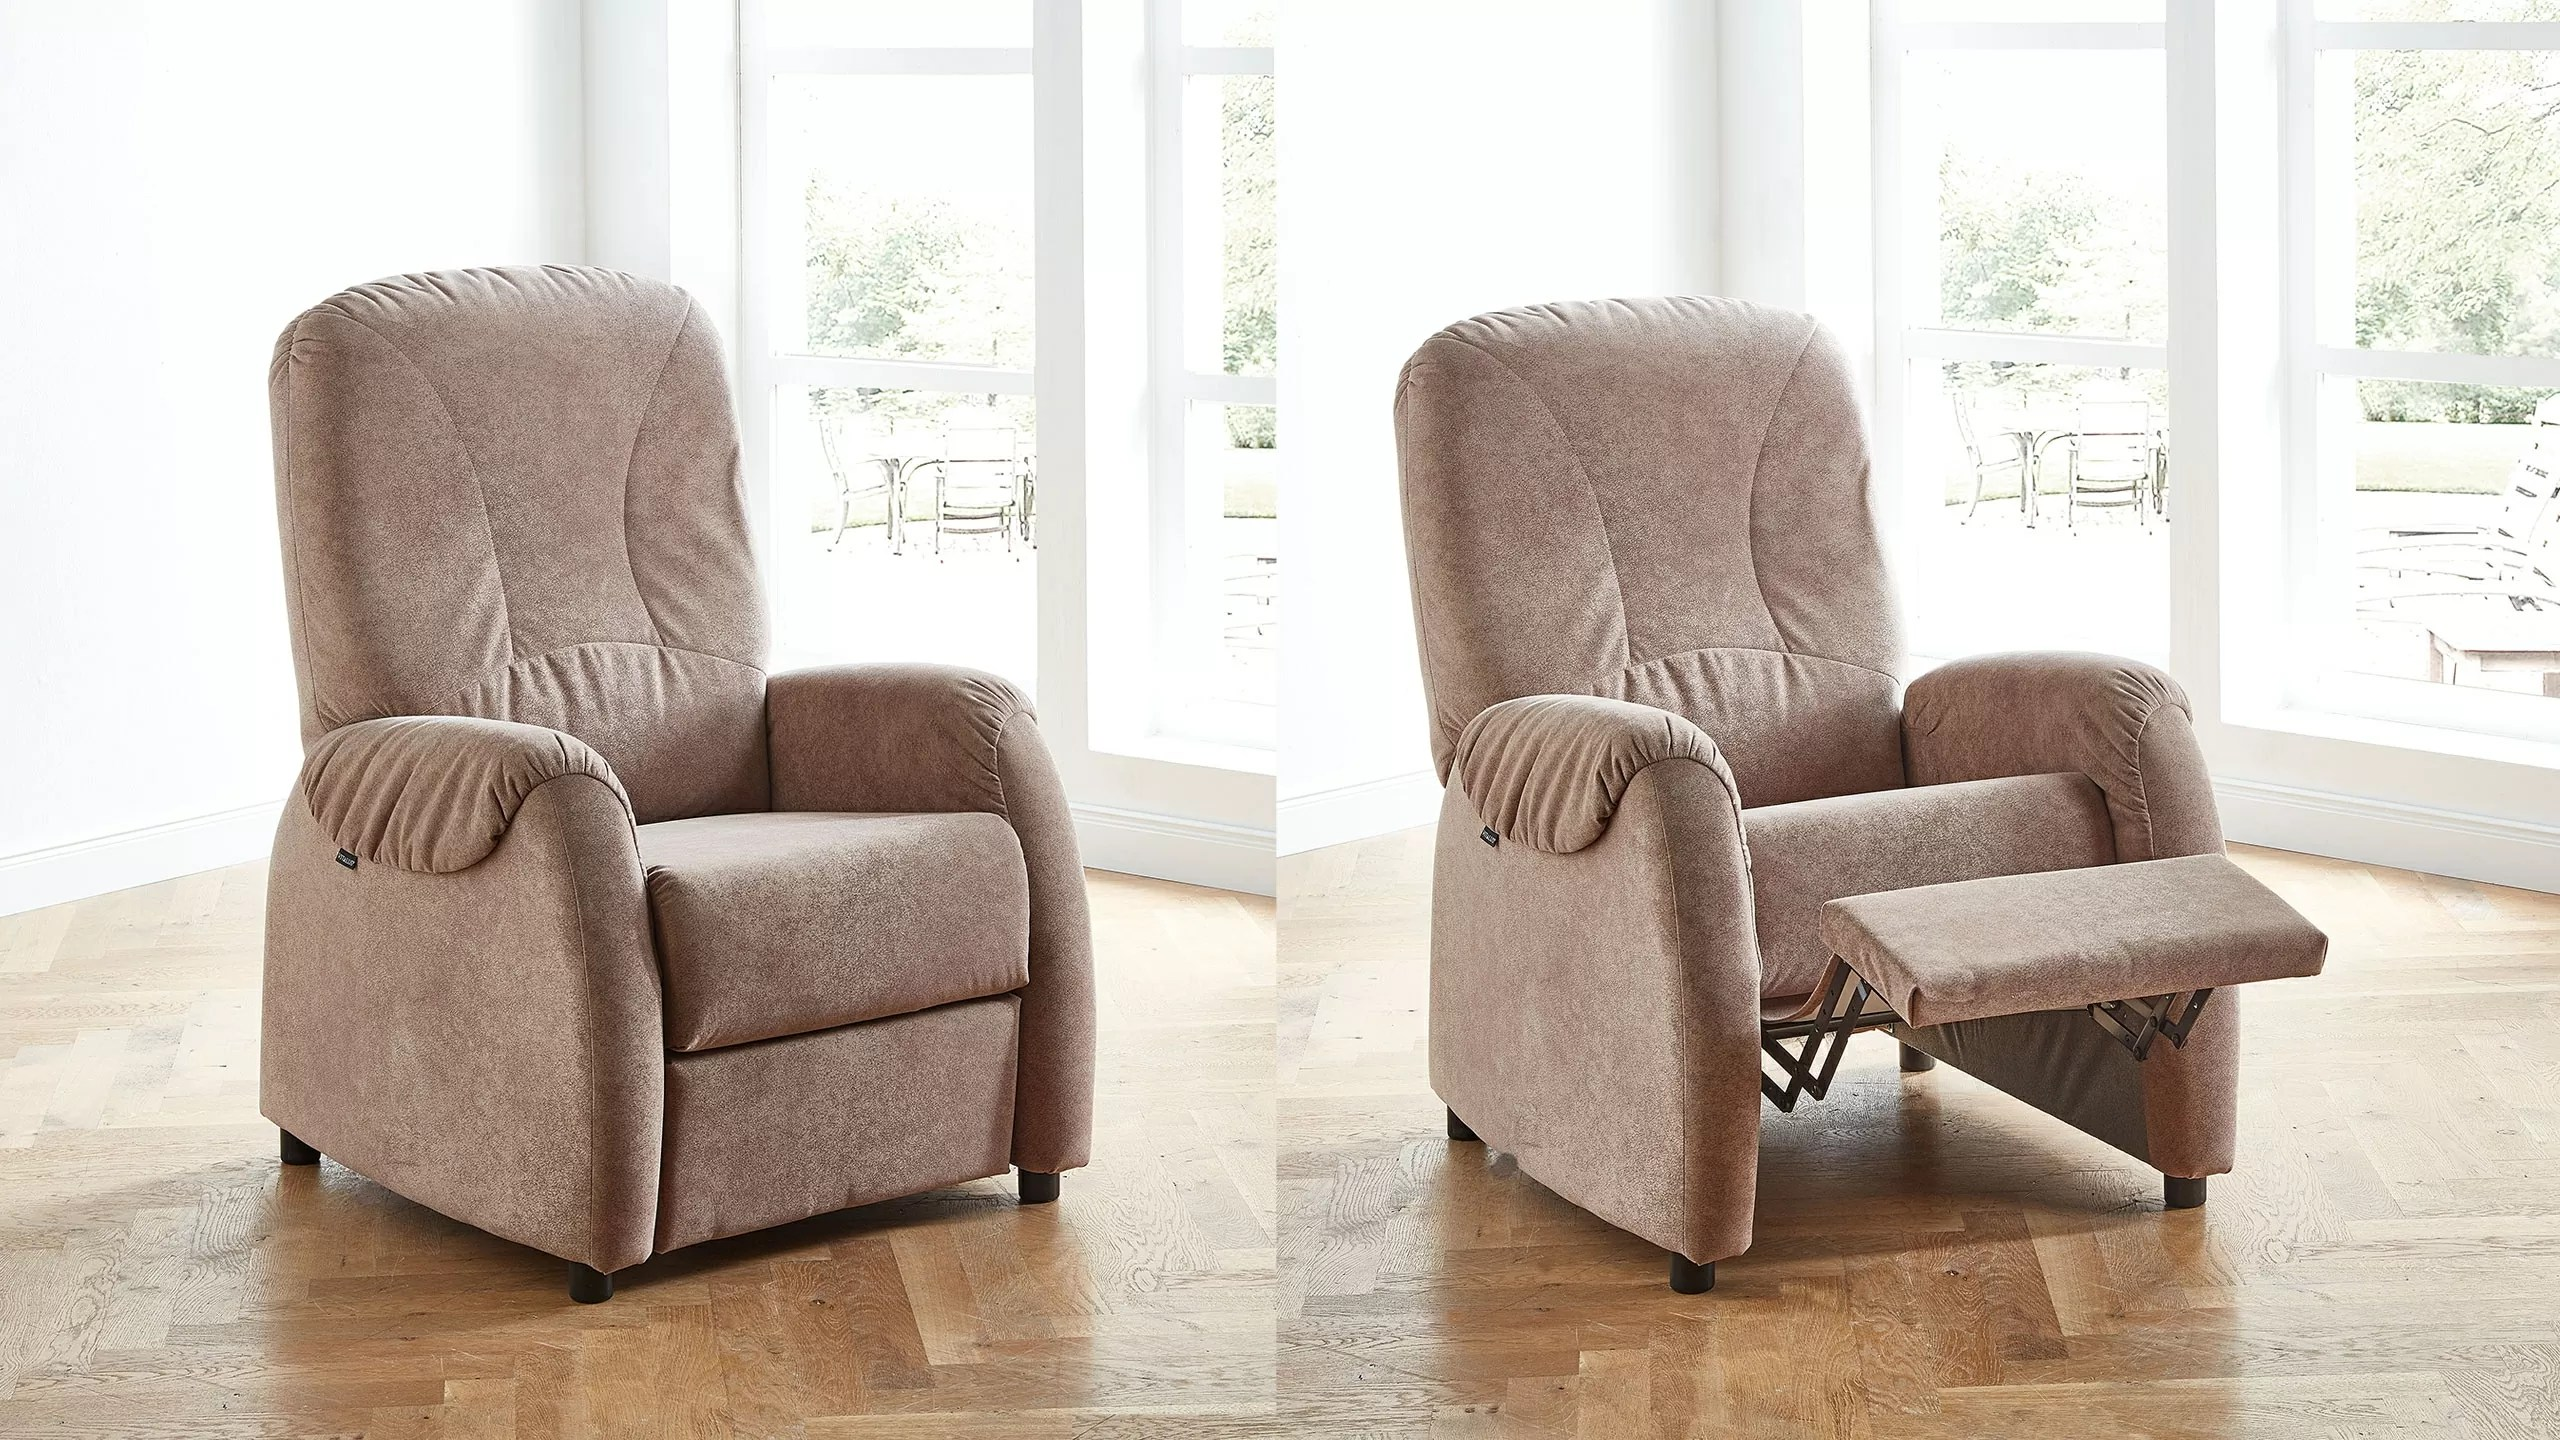 Xxl Sessel Beige Vitalus Sessel Beige | Tv-sessel | Sortiment | Multipolster